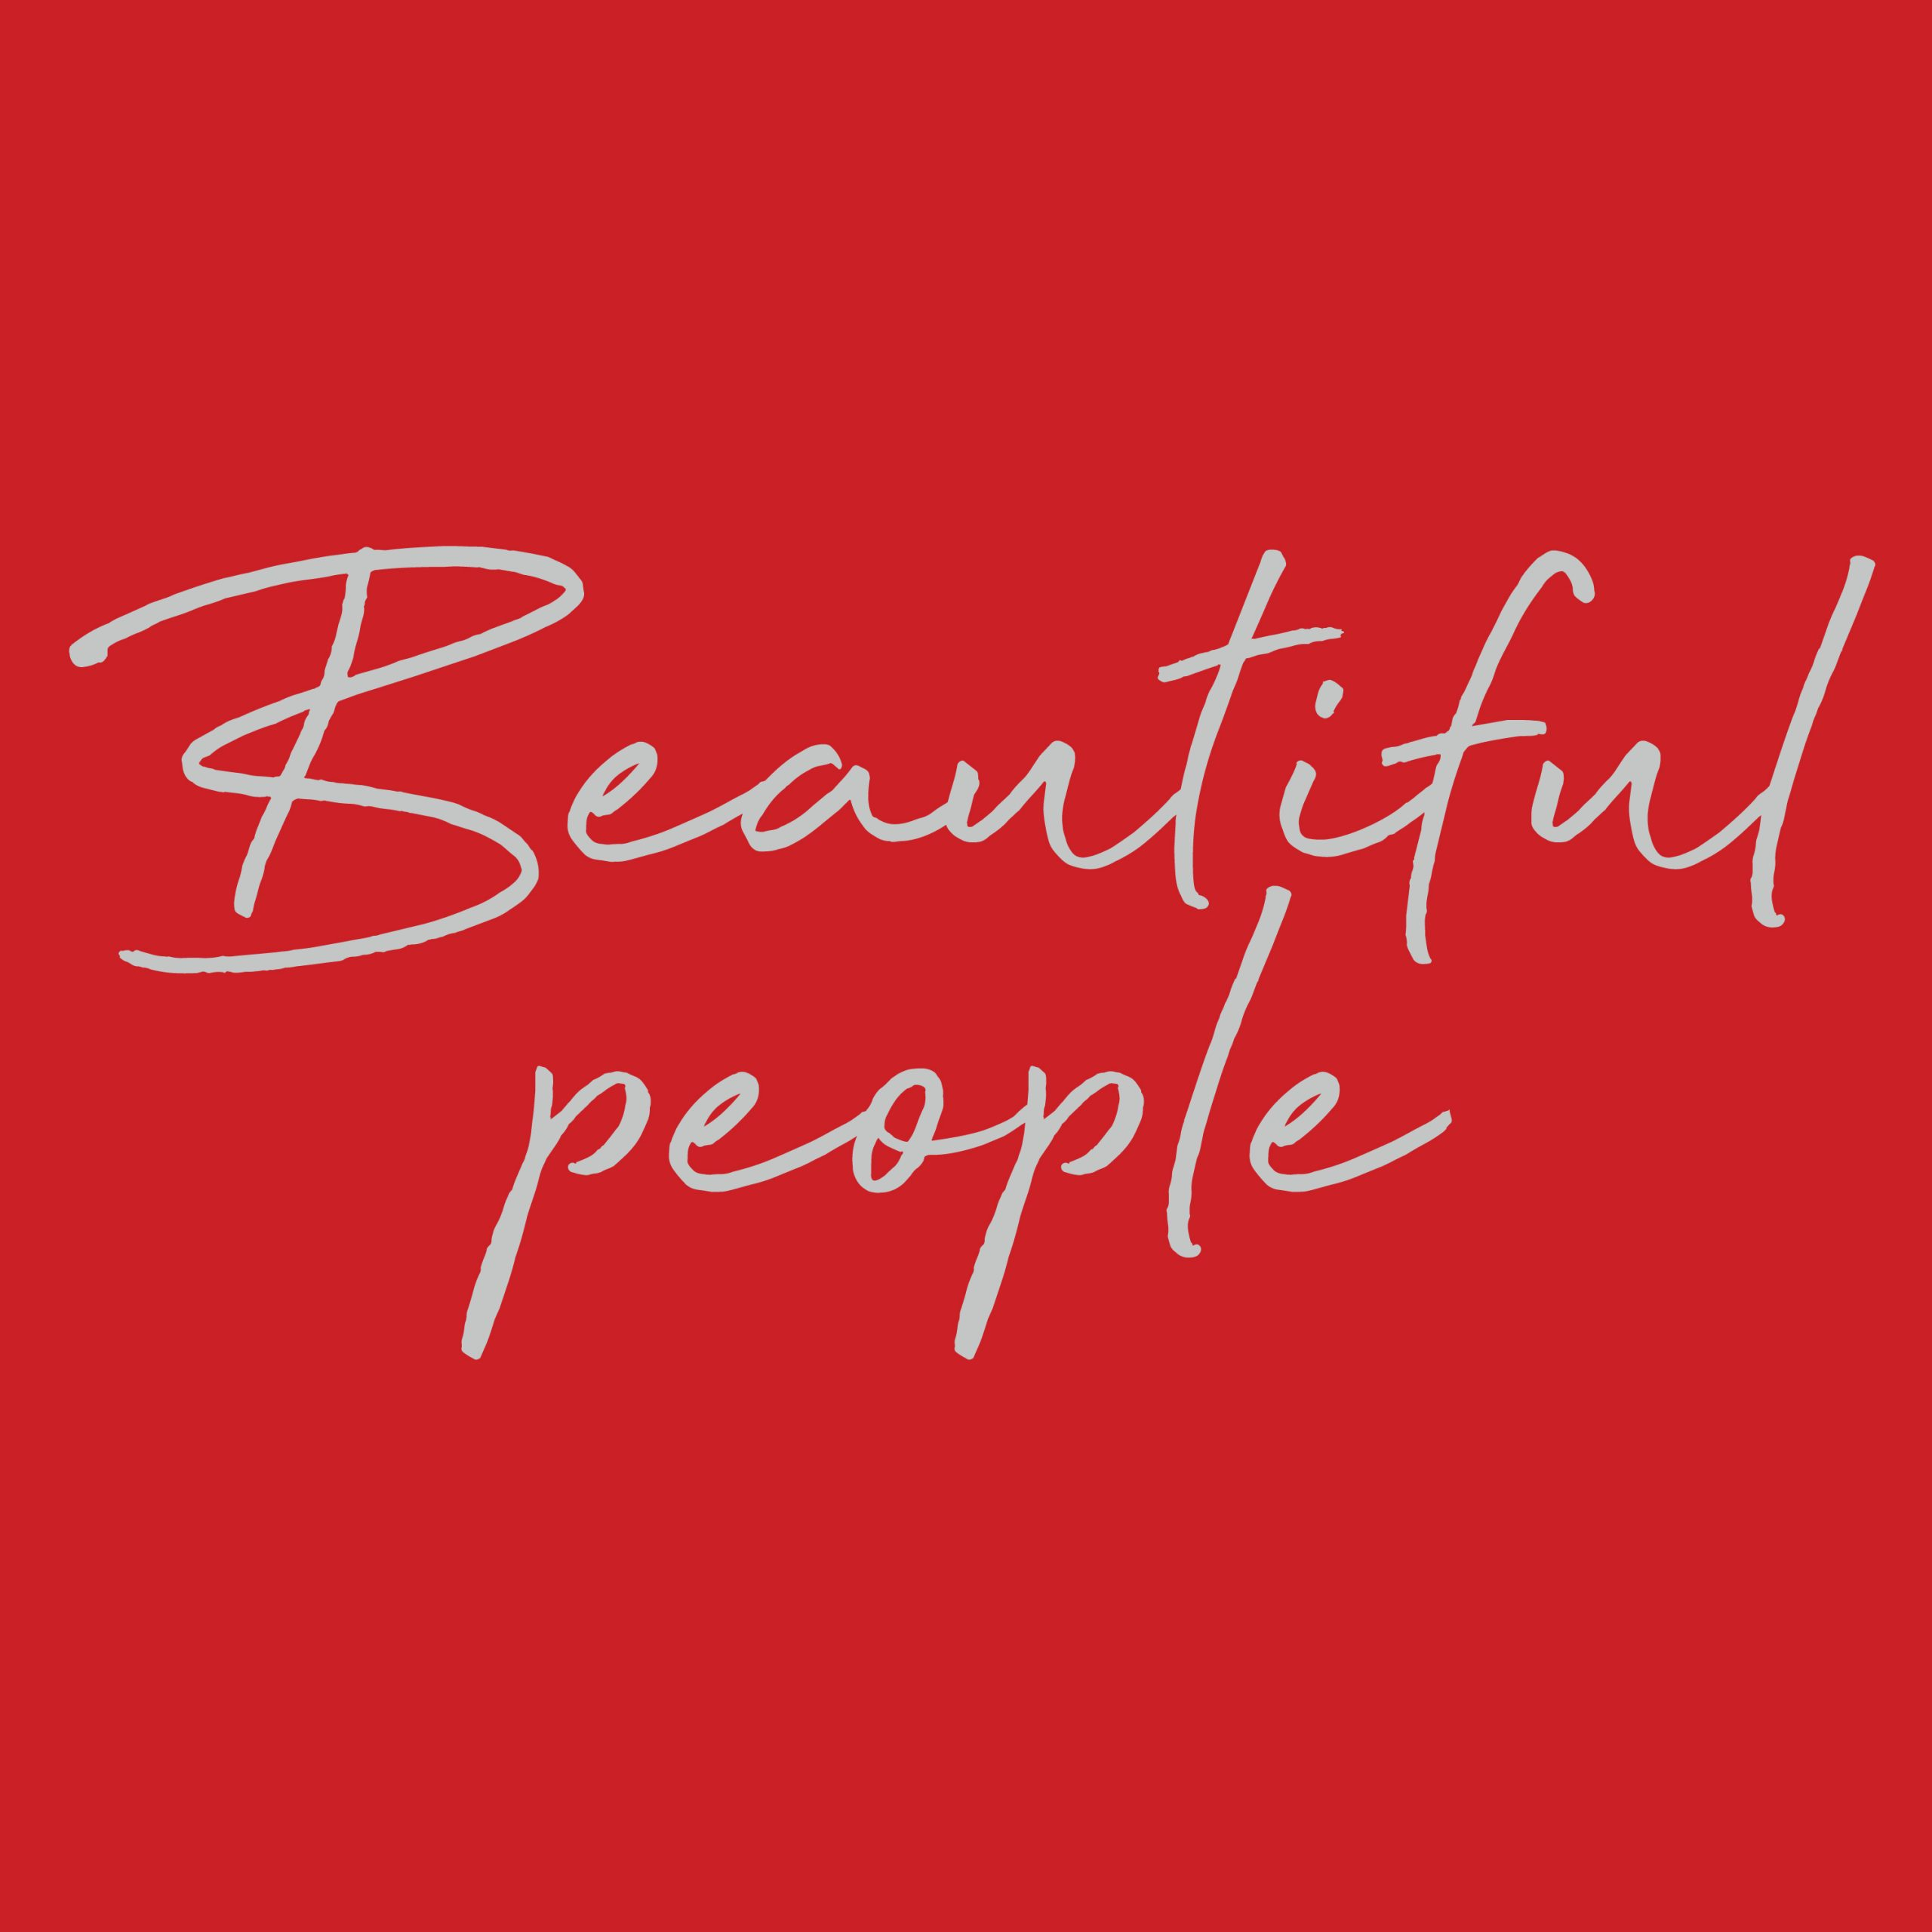 Beautiful People</br></br>